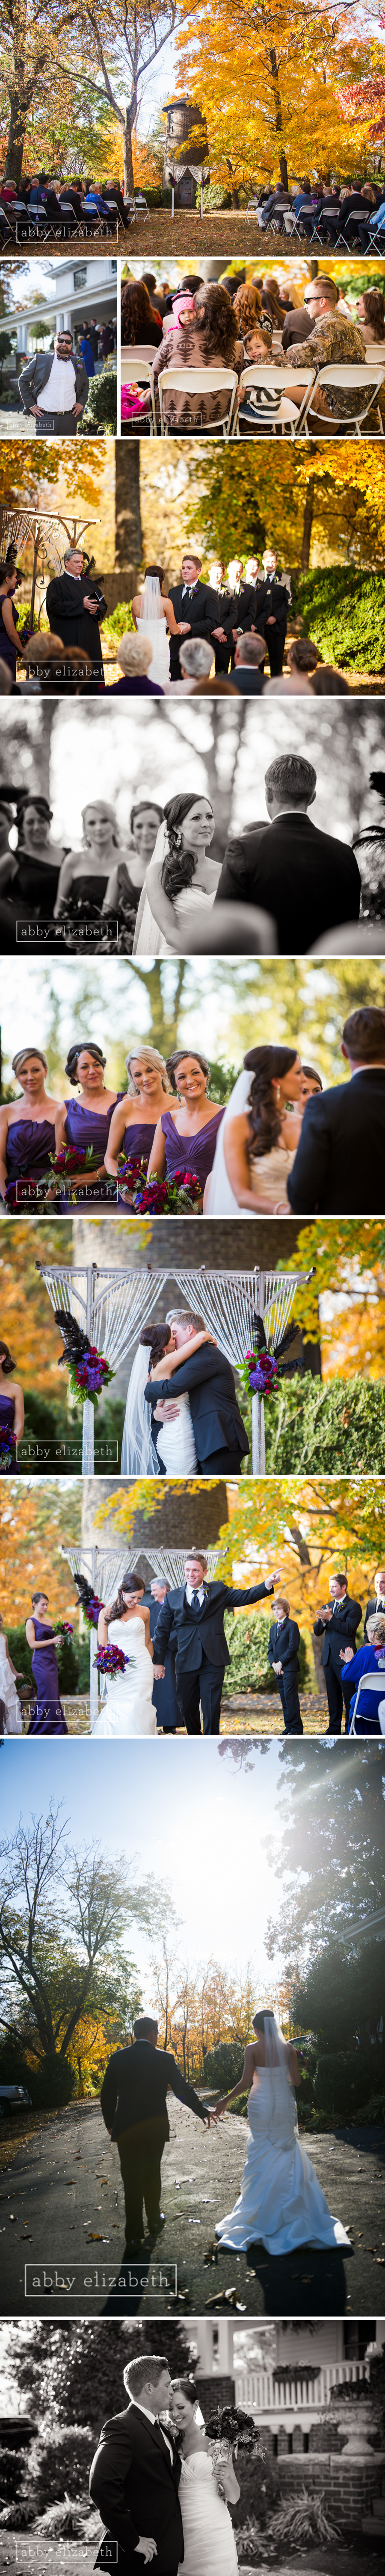 Fall_Wedding_Knoxville_TN_28.jpg